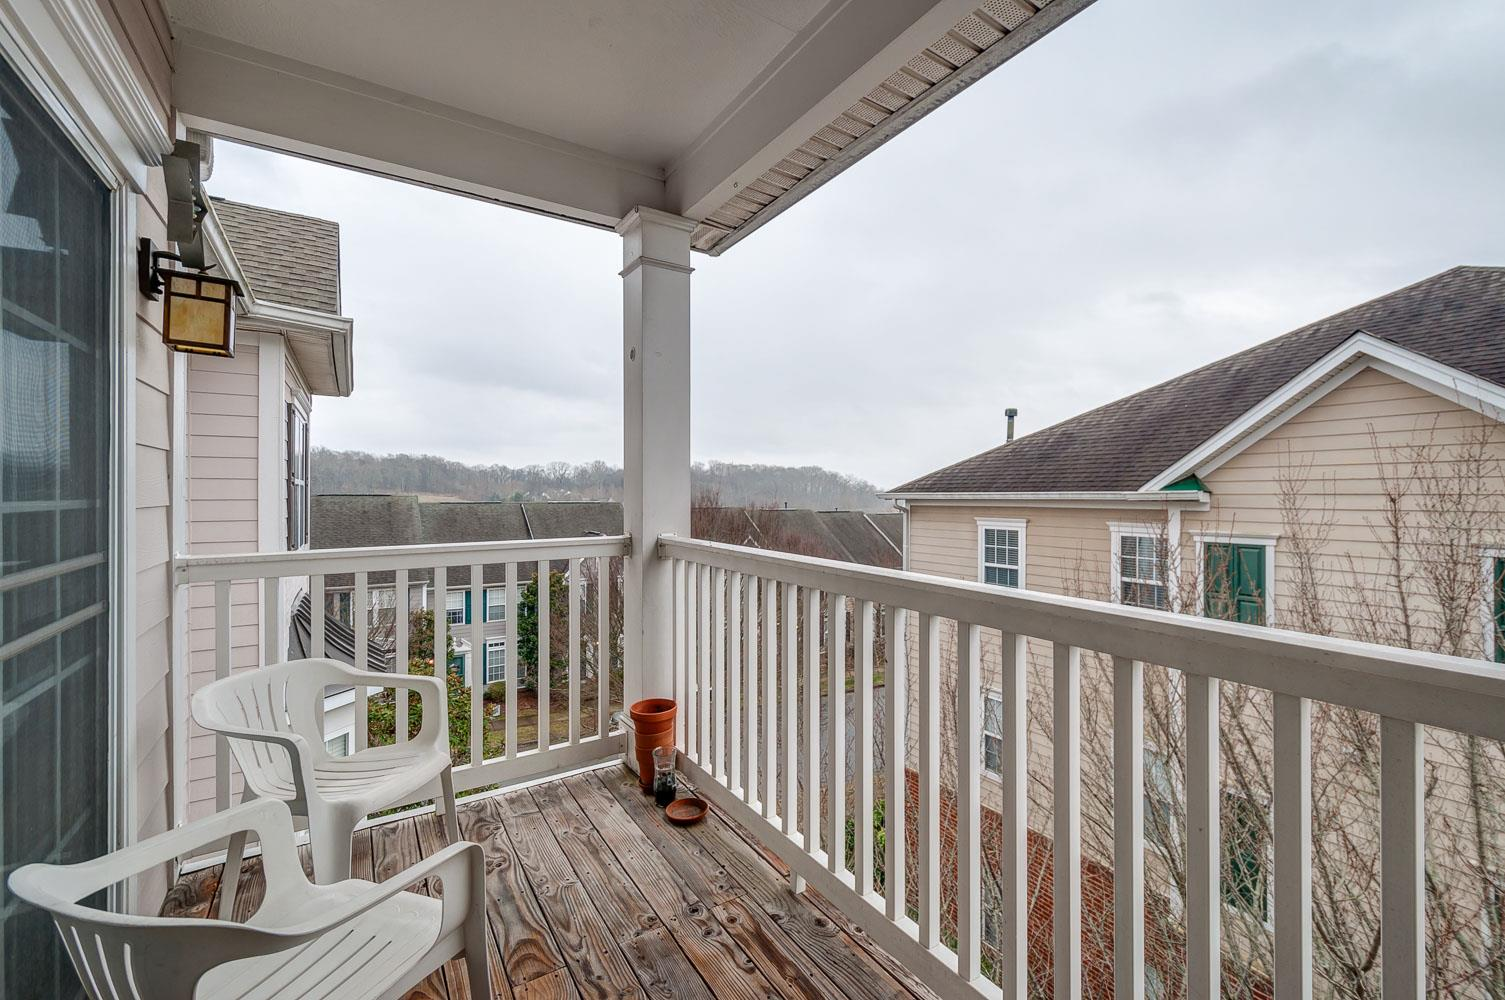 $177,499 - 2Br/1Ba -  for Sale in Lenox Village, Nashville